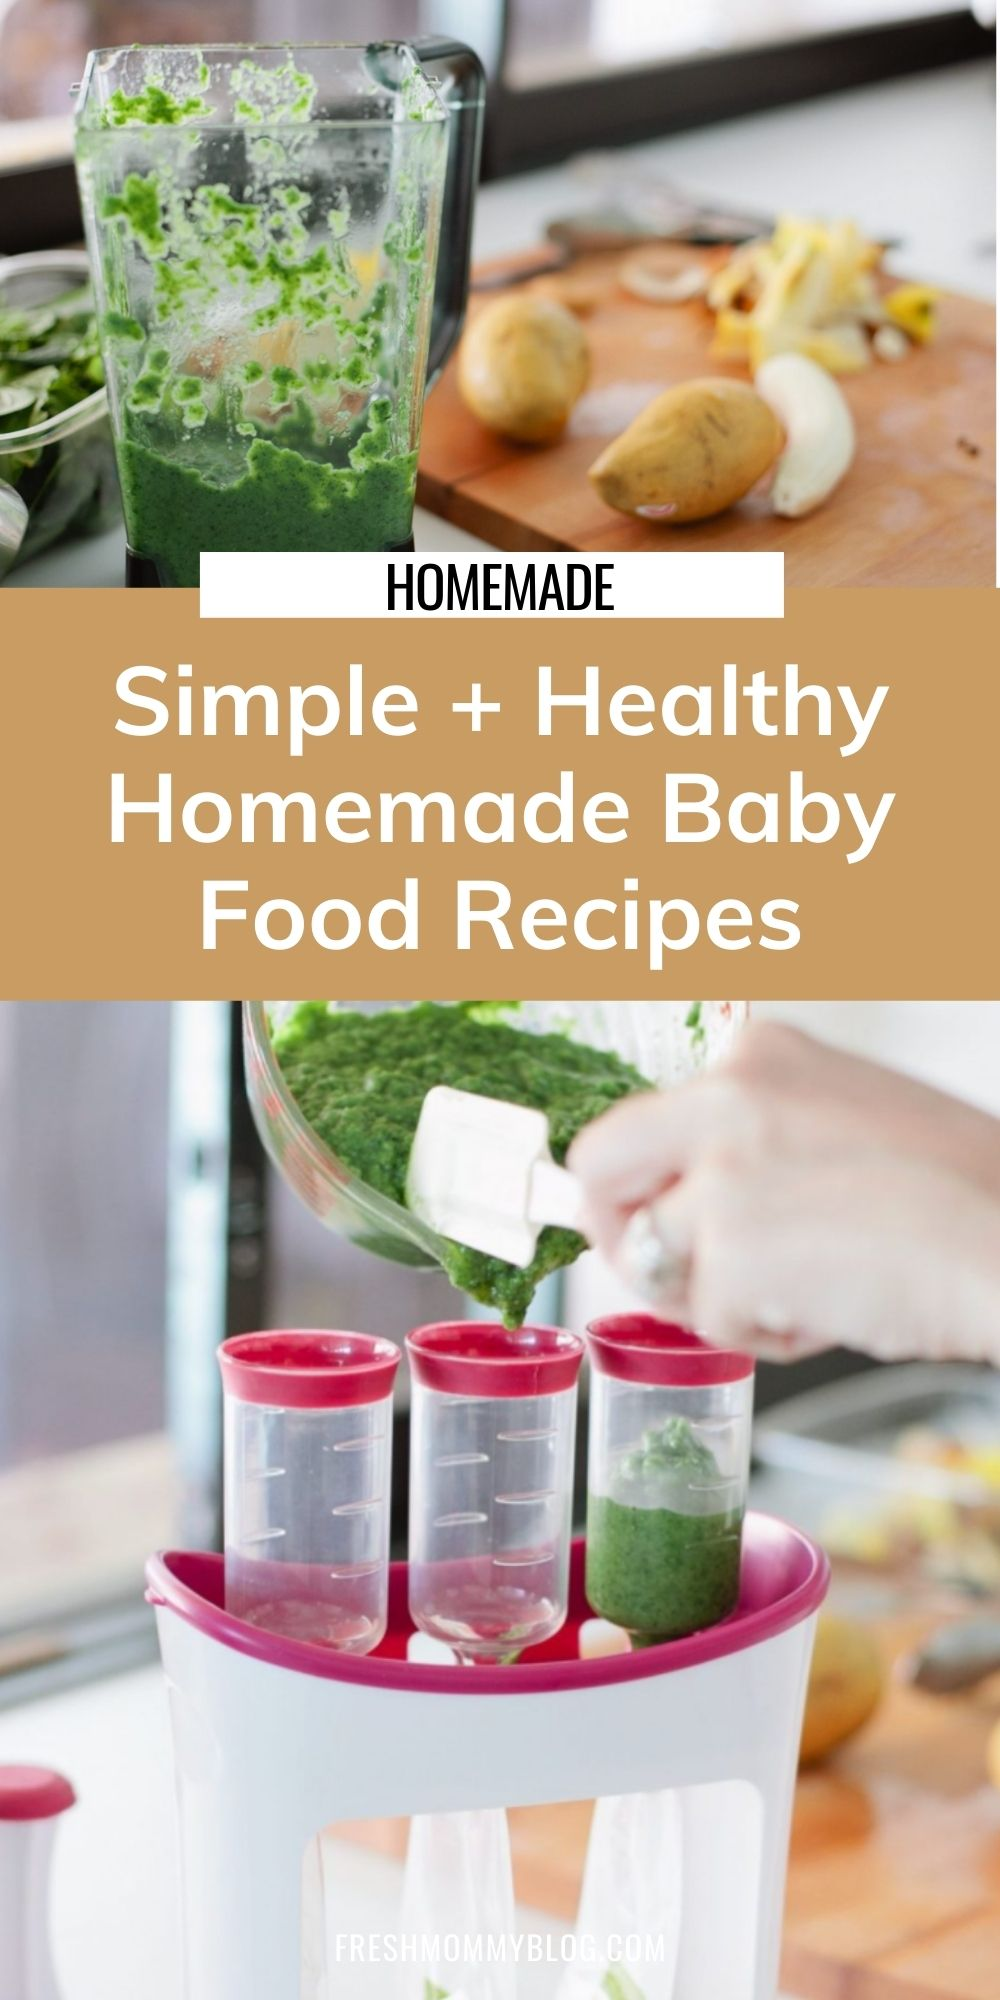 Easy and Simple Homemade Baby Food recipes and tips for making healthy homemade baby food right in your kitchen by popular Florida mom blogger Tabitha Blue of Fresh Mommy Blog.